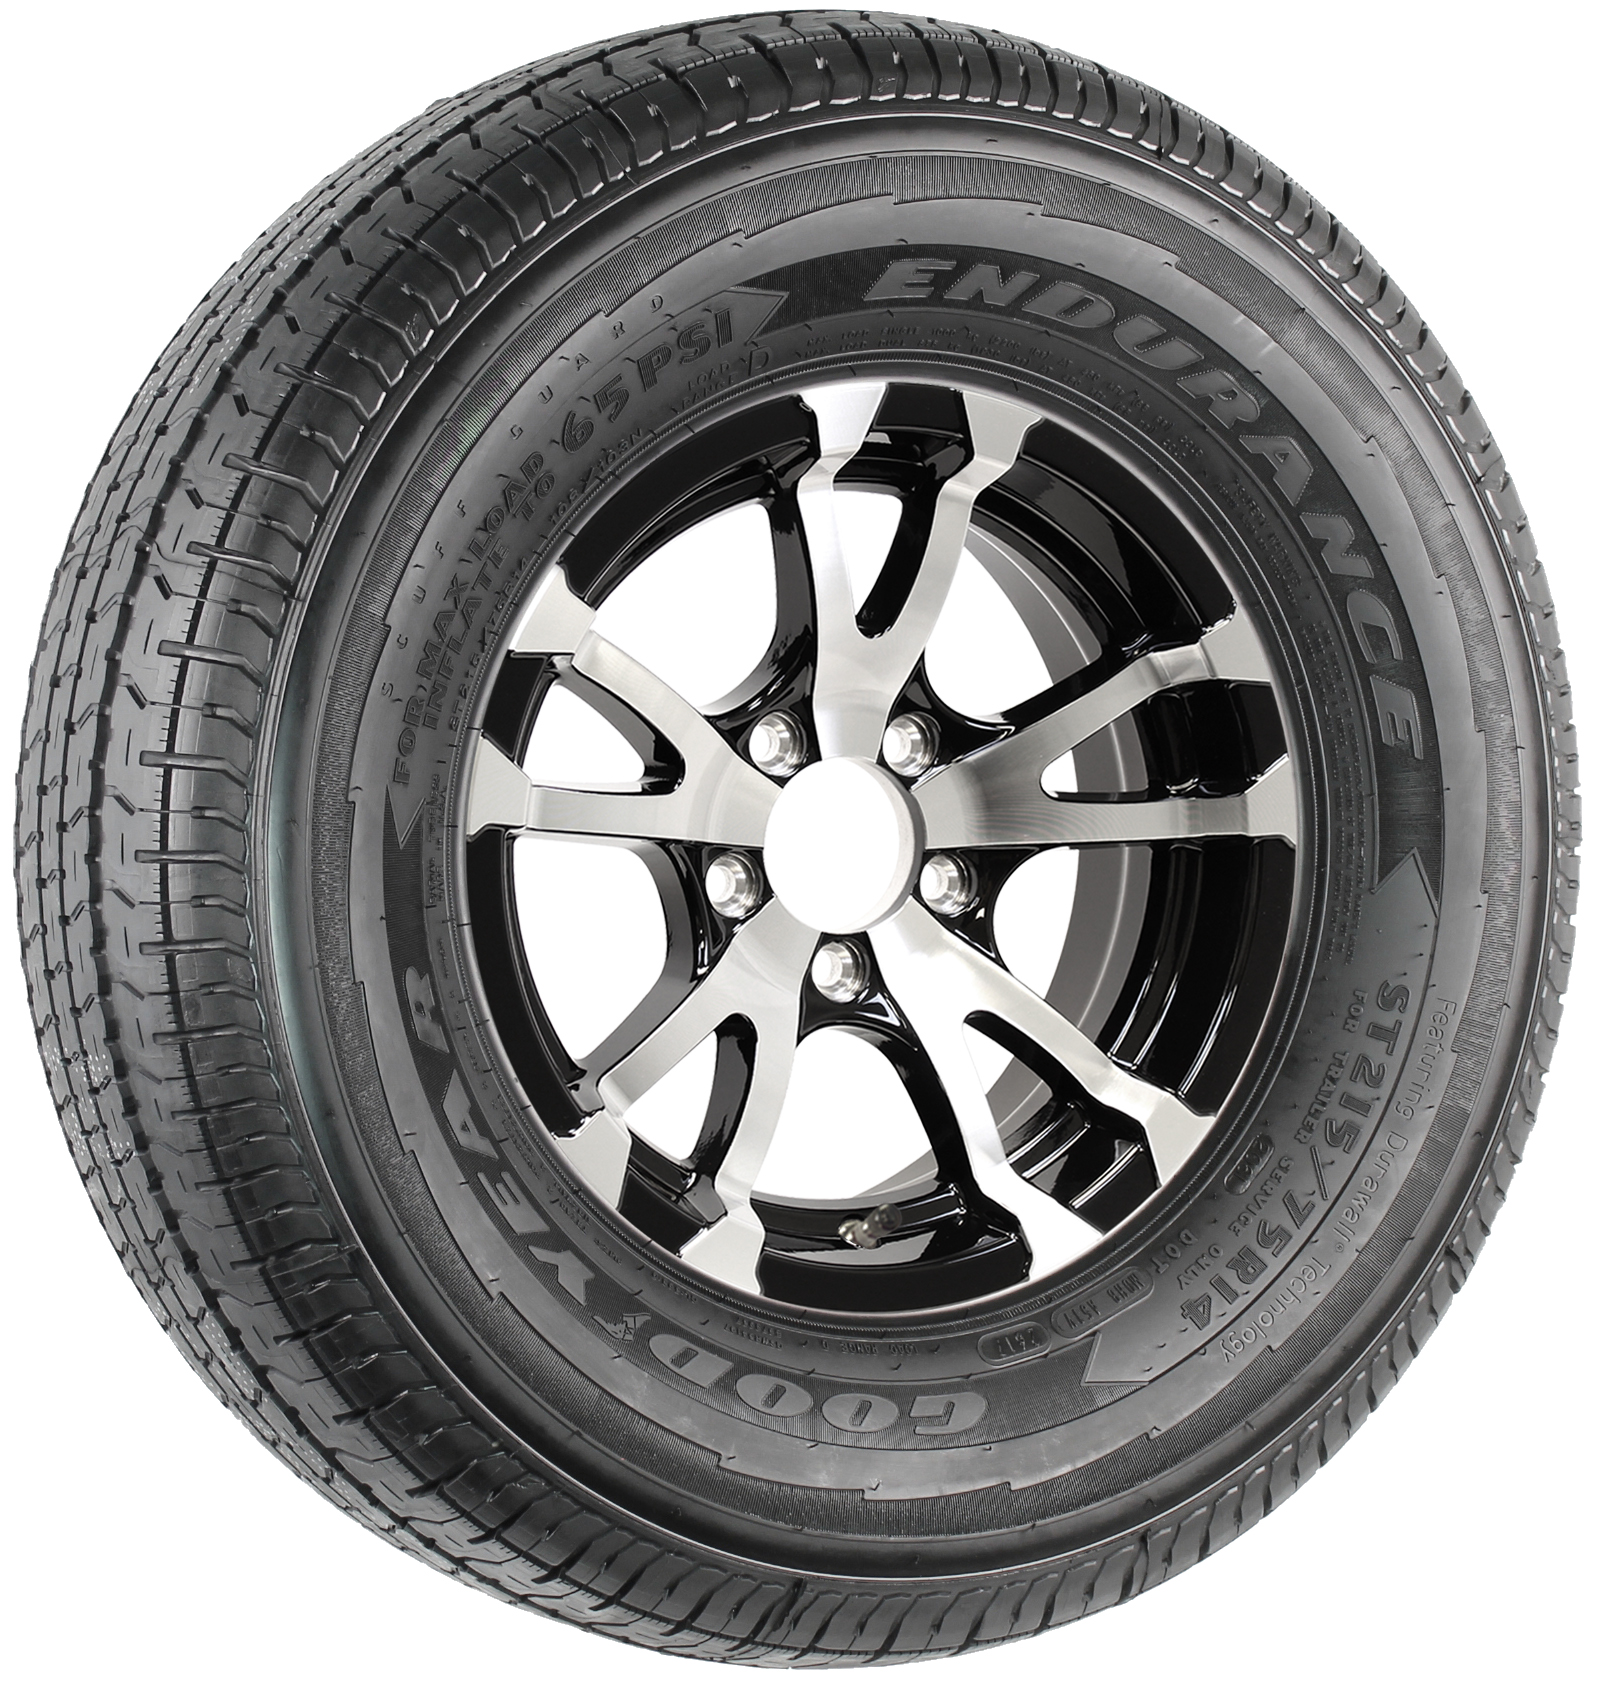 "Goodyear Endurance ST215/75R14 LRD Radial Tire on 14"" 5-Lug Avalanche Black Aluminum Assembly Image"